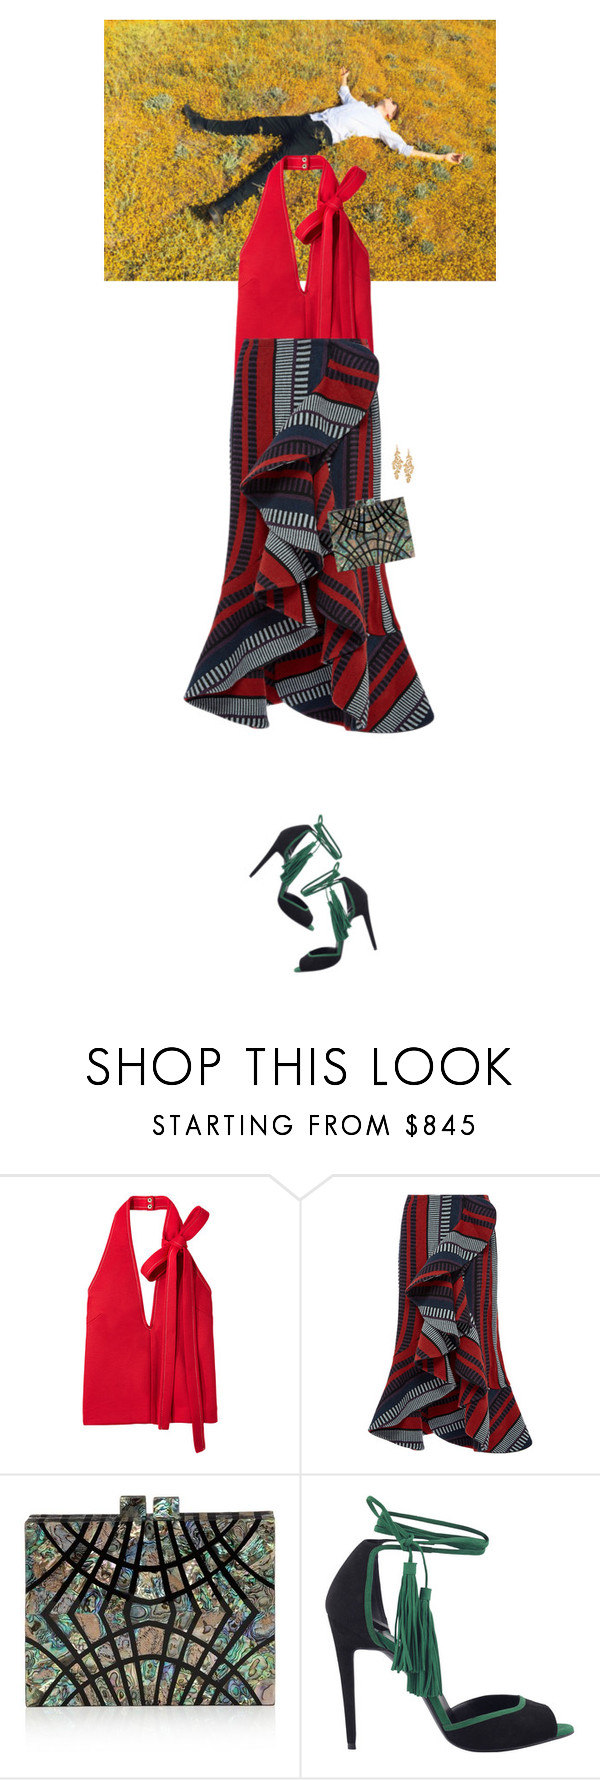 """Untitled #2464"" by wizmurphy ❤ liked on Polyvore featuring Johanna Ortiz, Nathalie Trad, Pierre Hardy, Stella & Dot and johannaortiz"